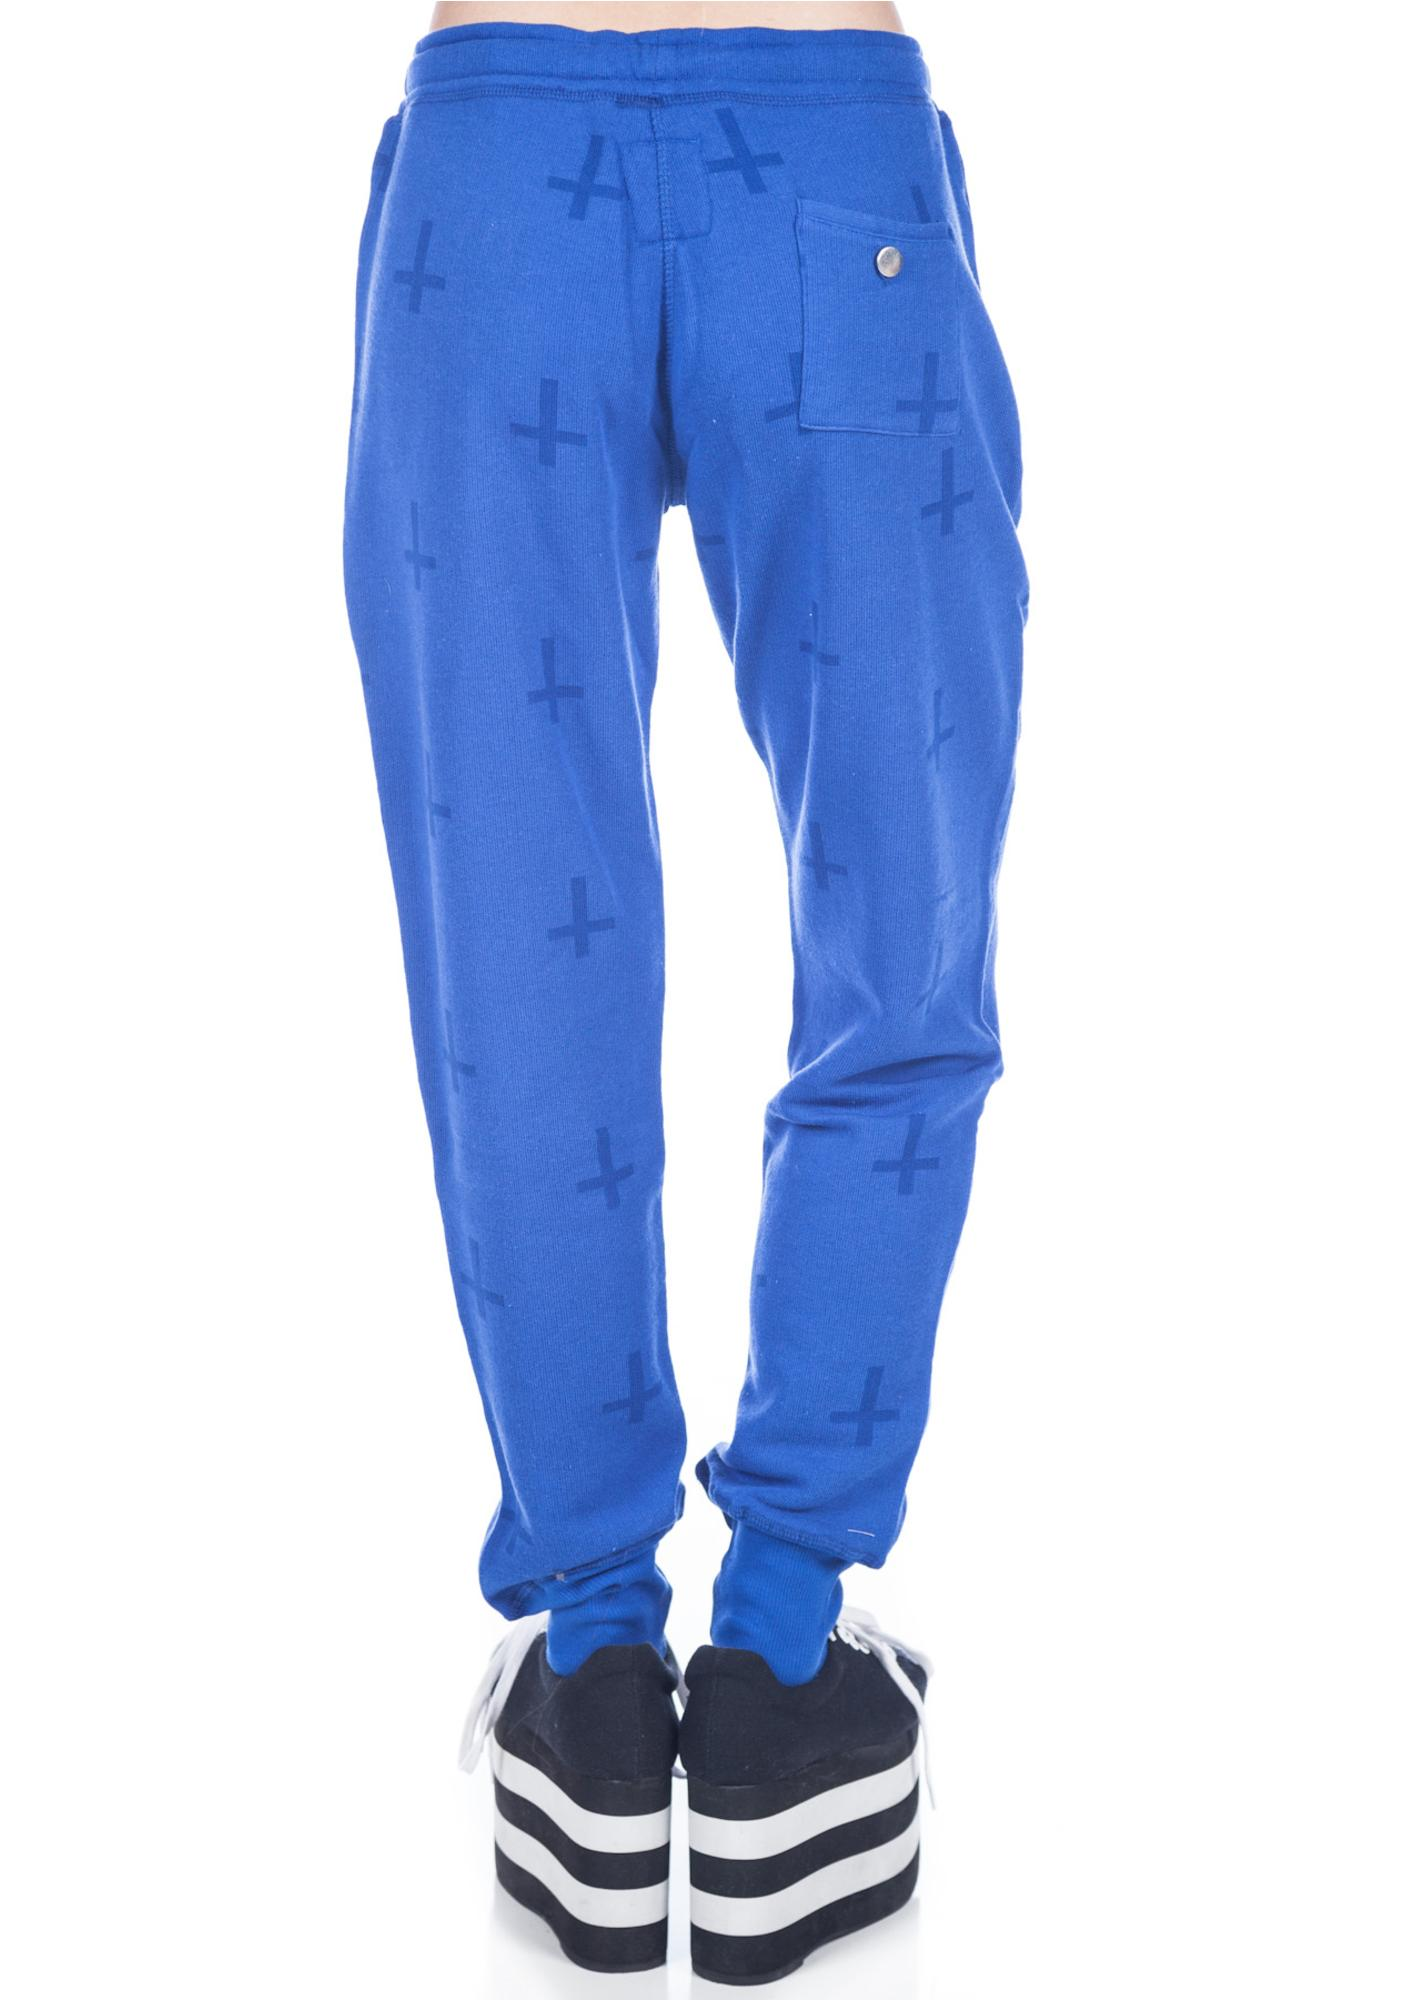 Zoe Karssen Cross All Over Sweat Pants